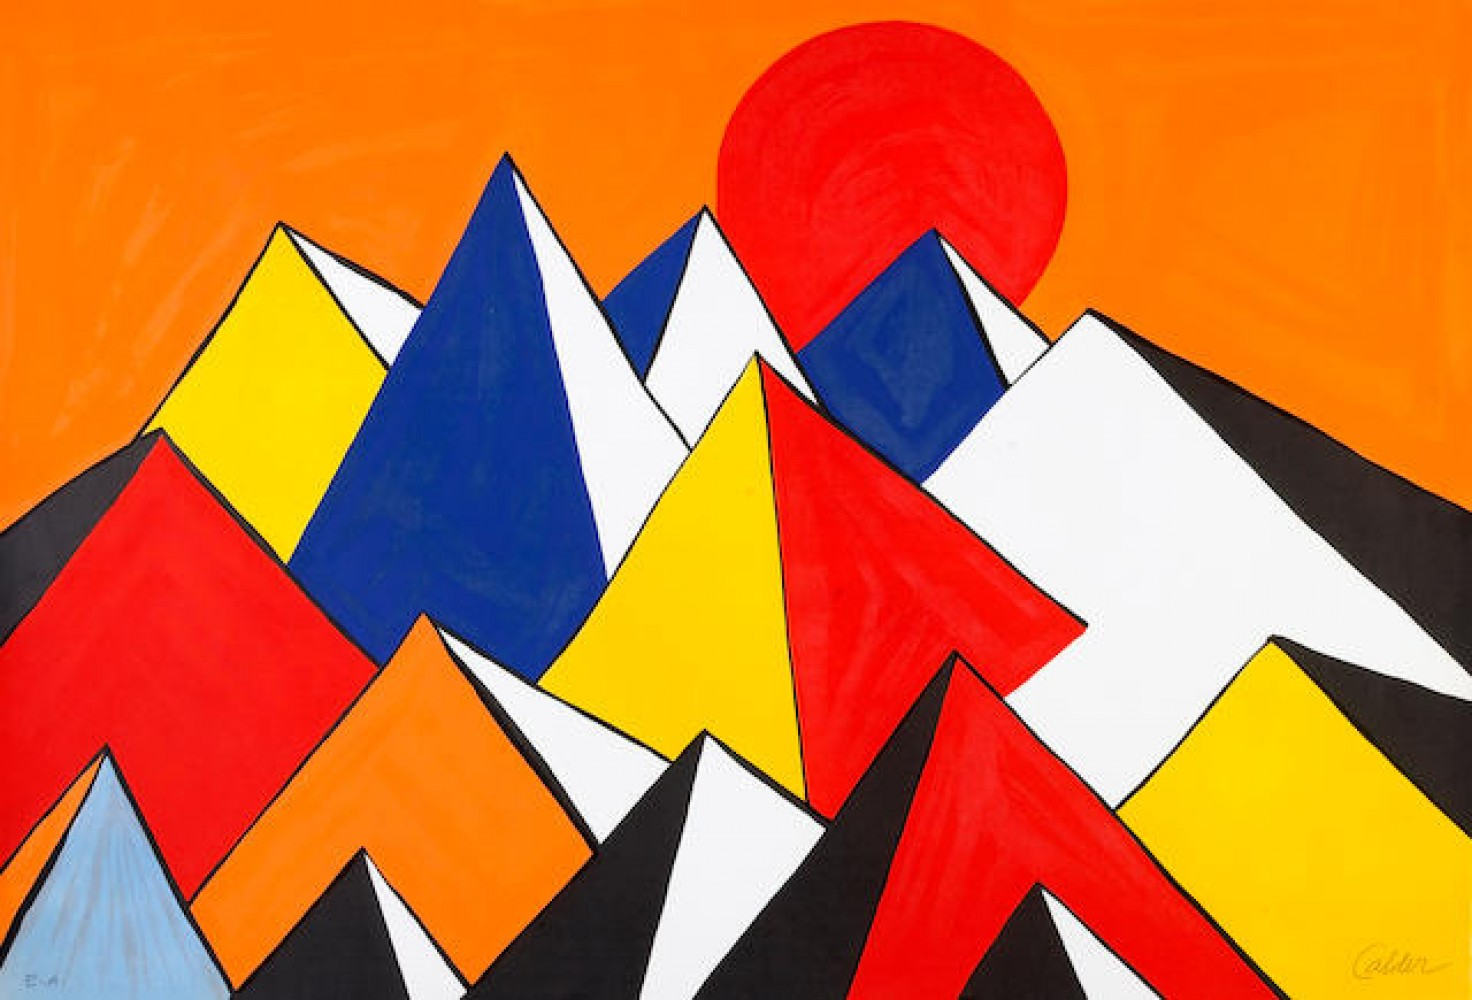 Homage to the Sun 1975 by Alexander Calder